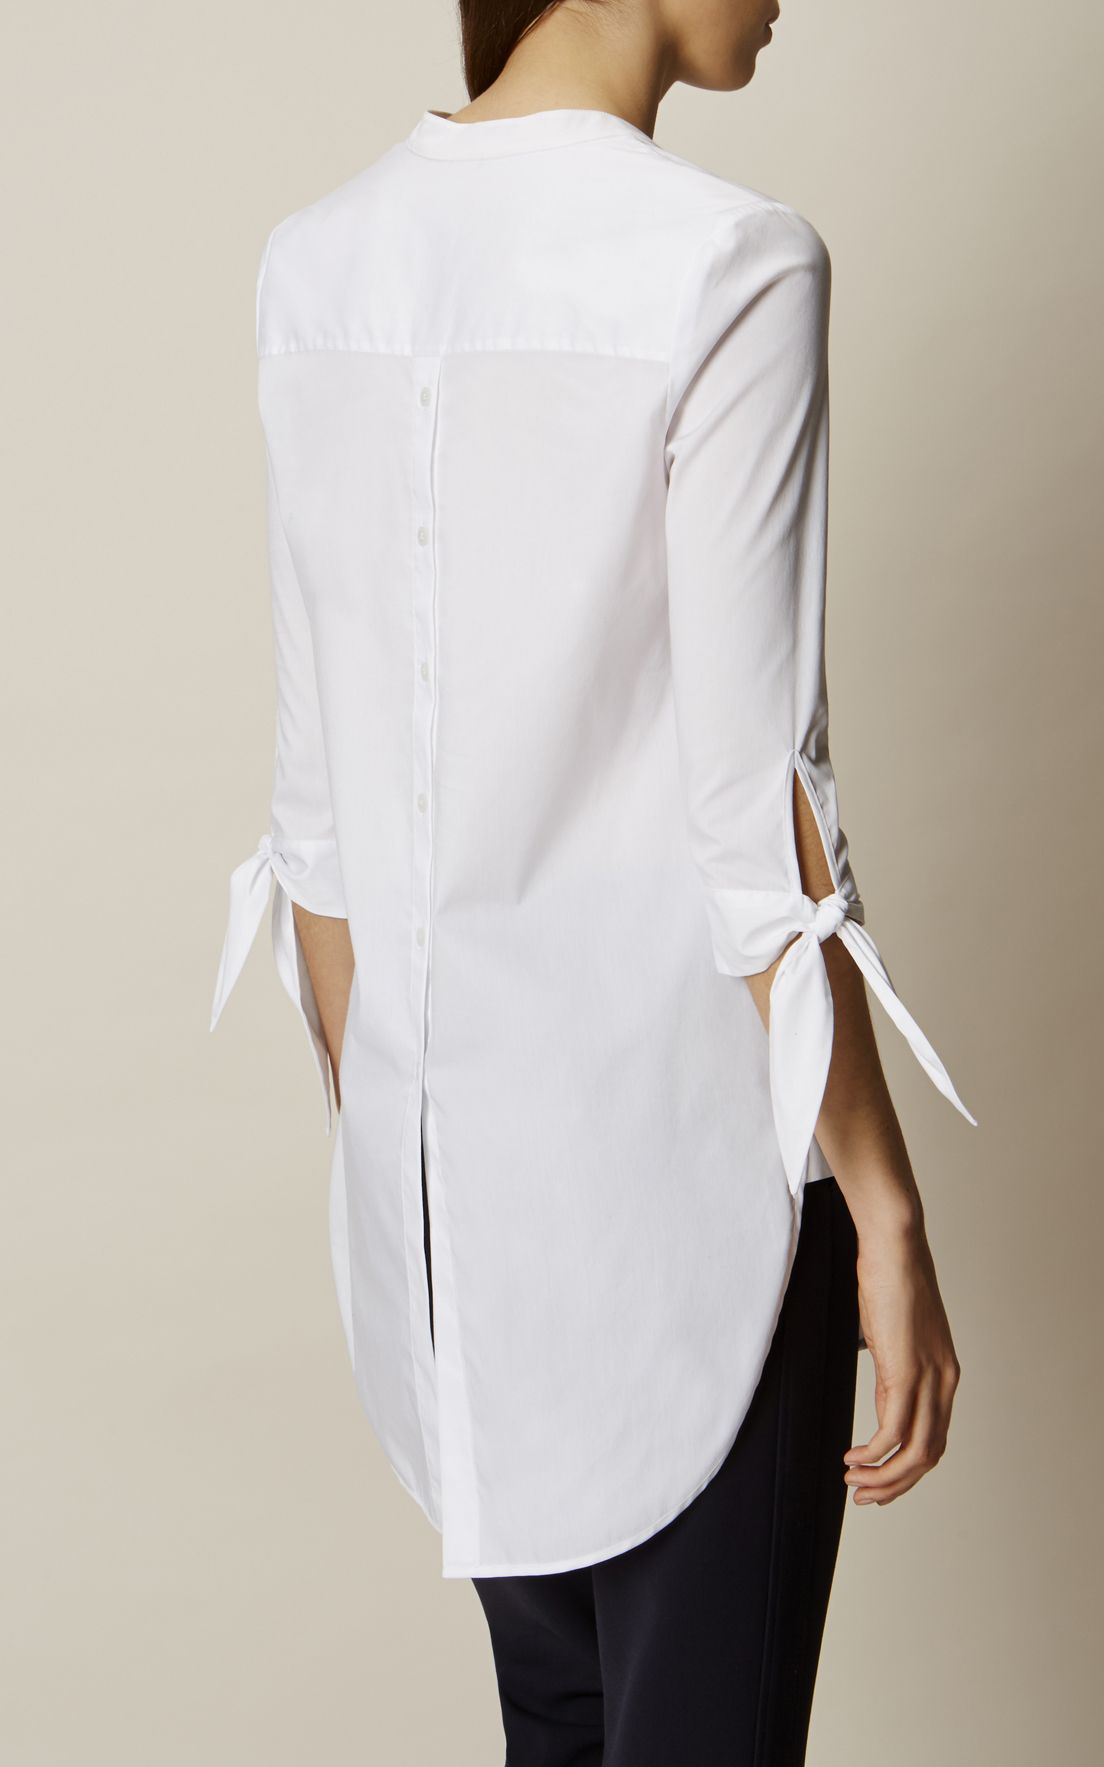 11f1c3ad9 Karen Millen, THE OVERSIZED SHIRT White | Clothing | Oversized shirt ...